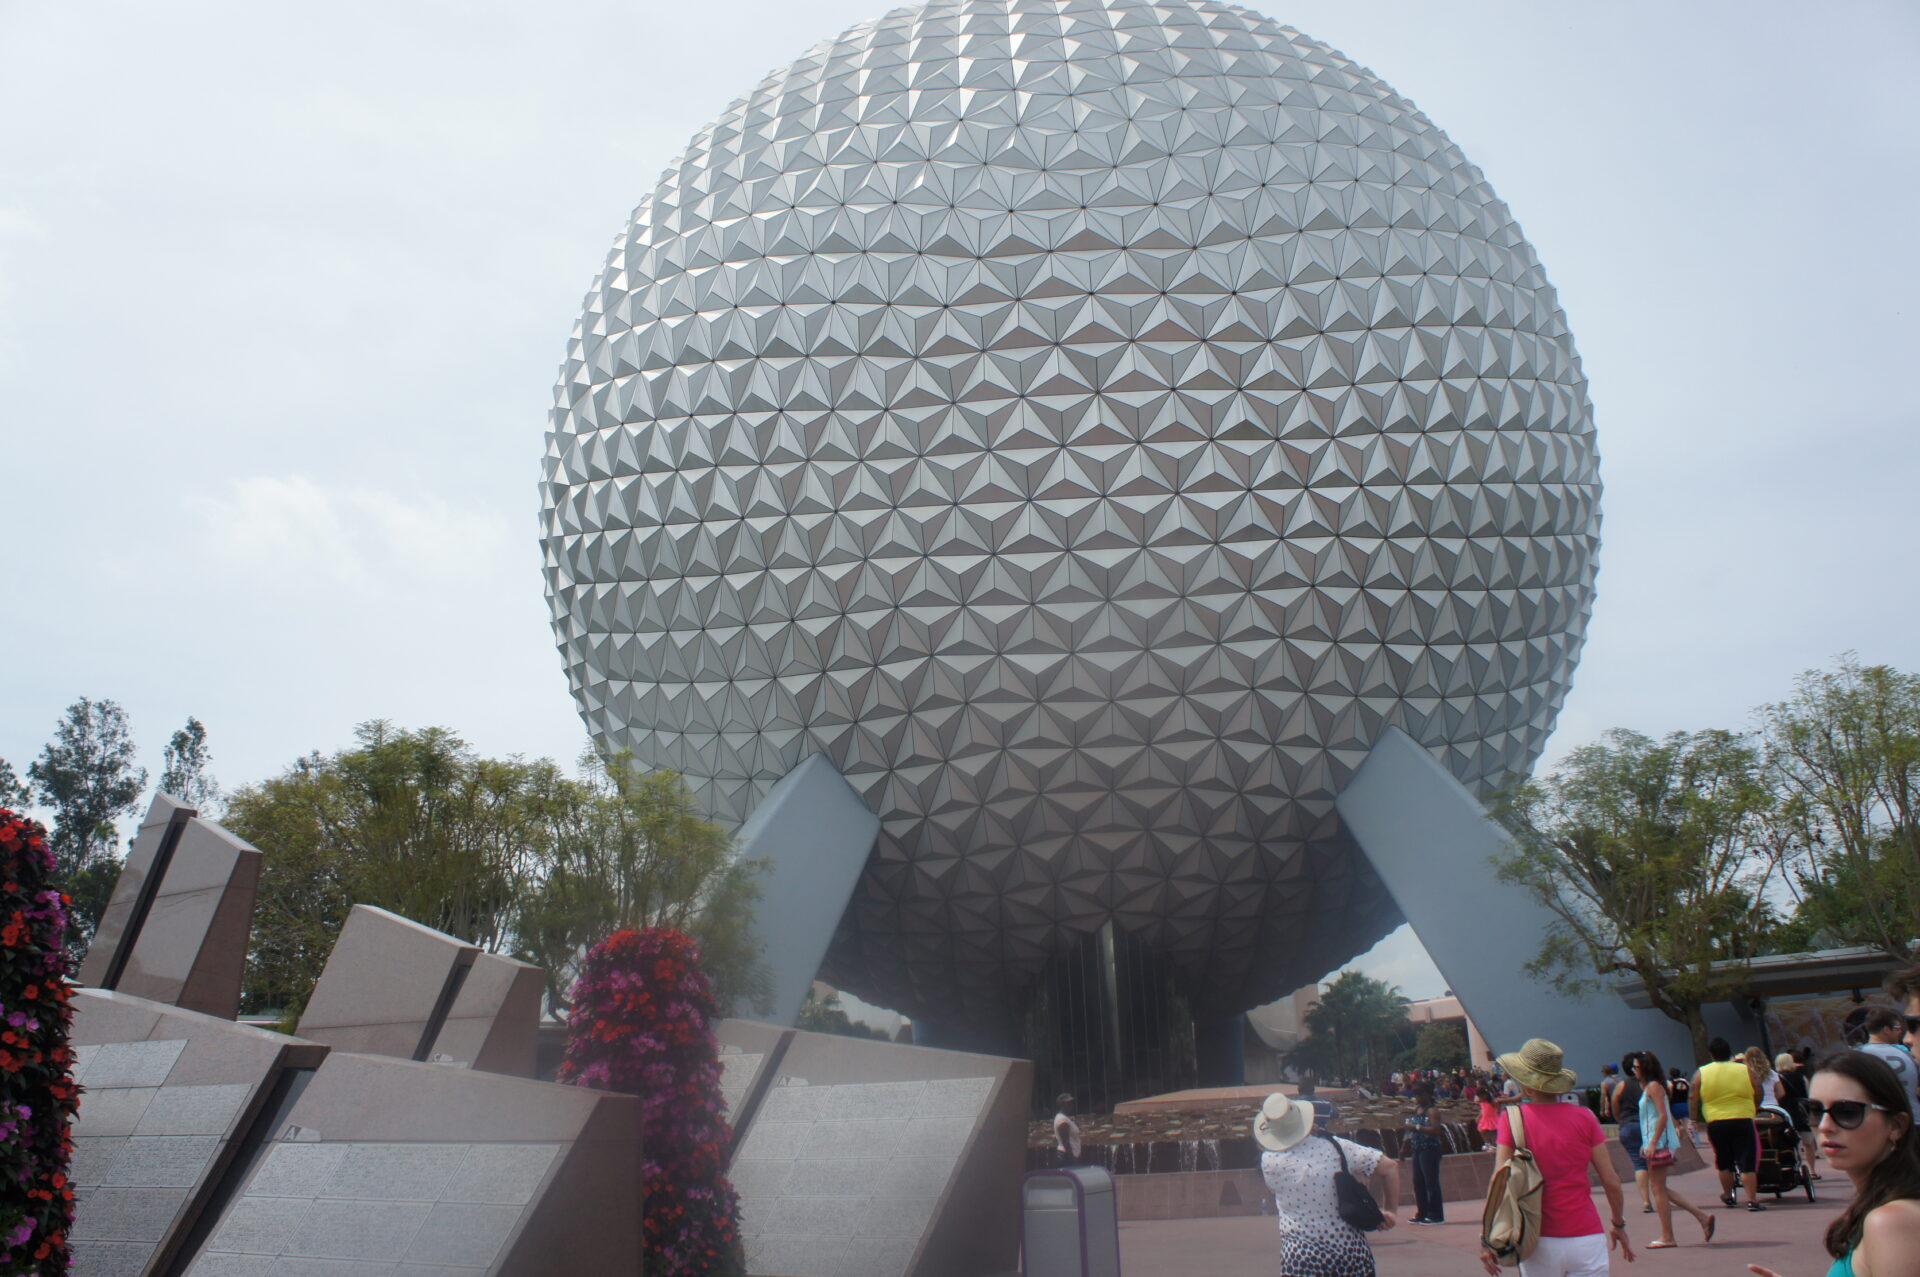 Future World East - Epcot